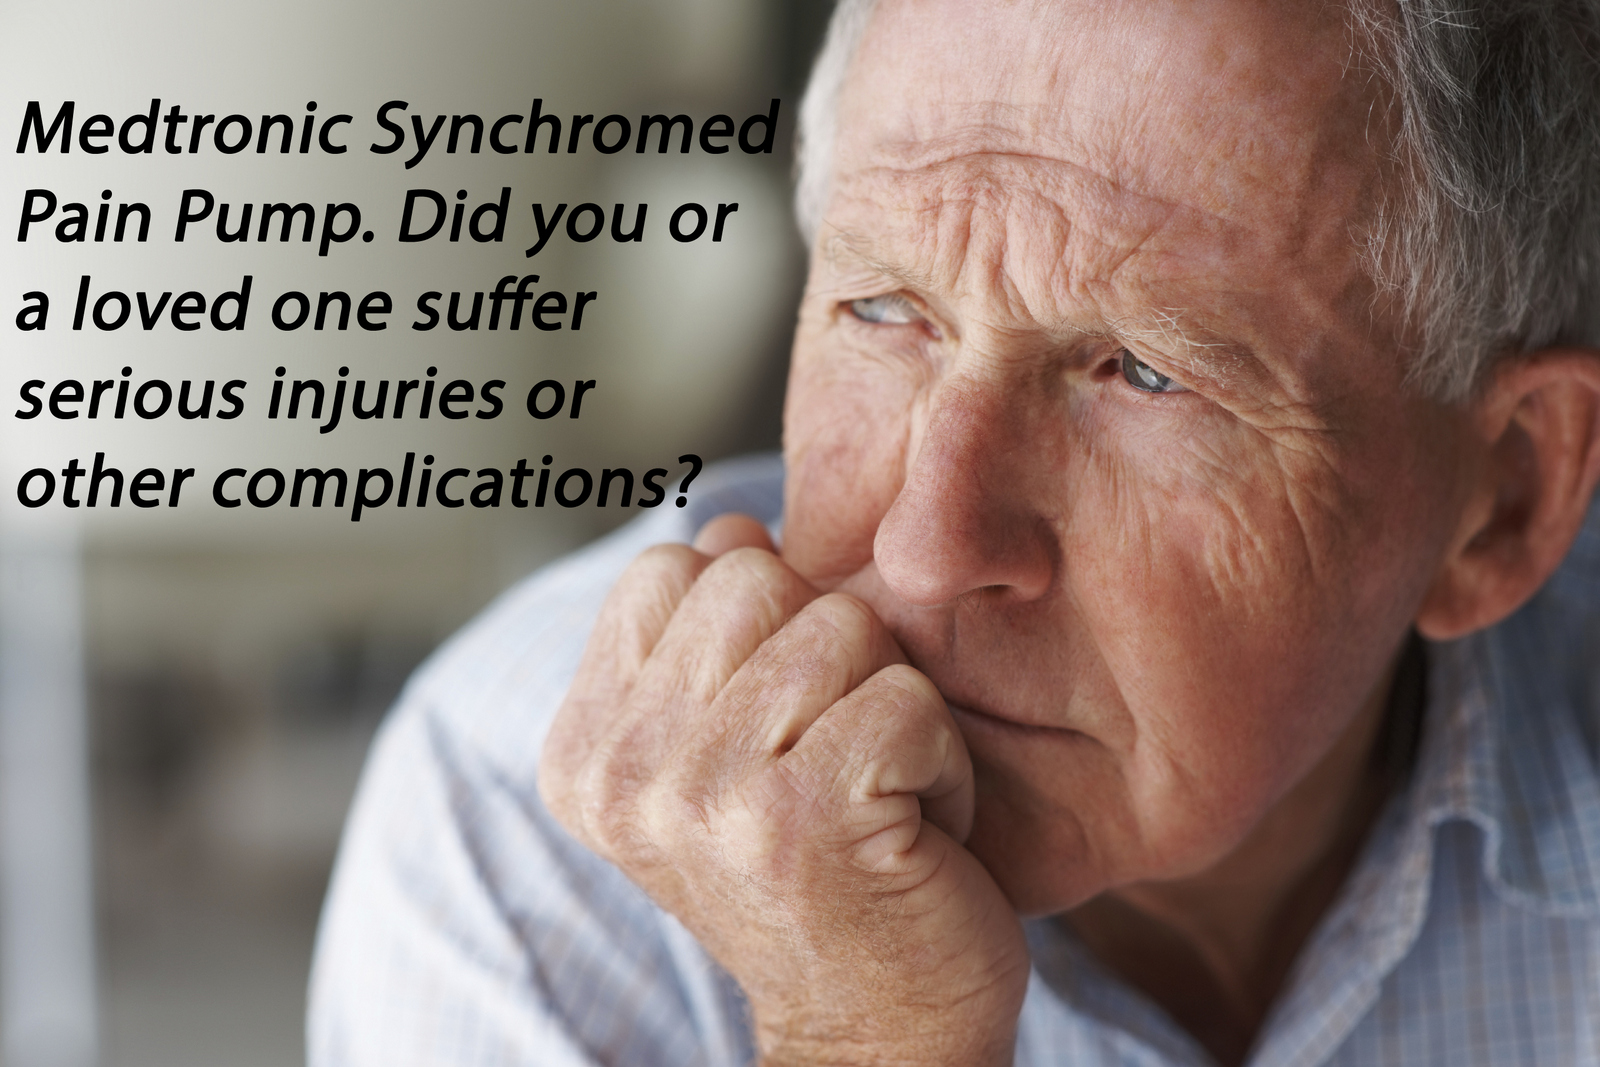 Medtronic Synchromed Pain Pump Lawsuits